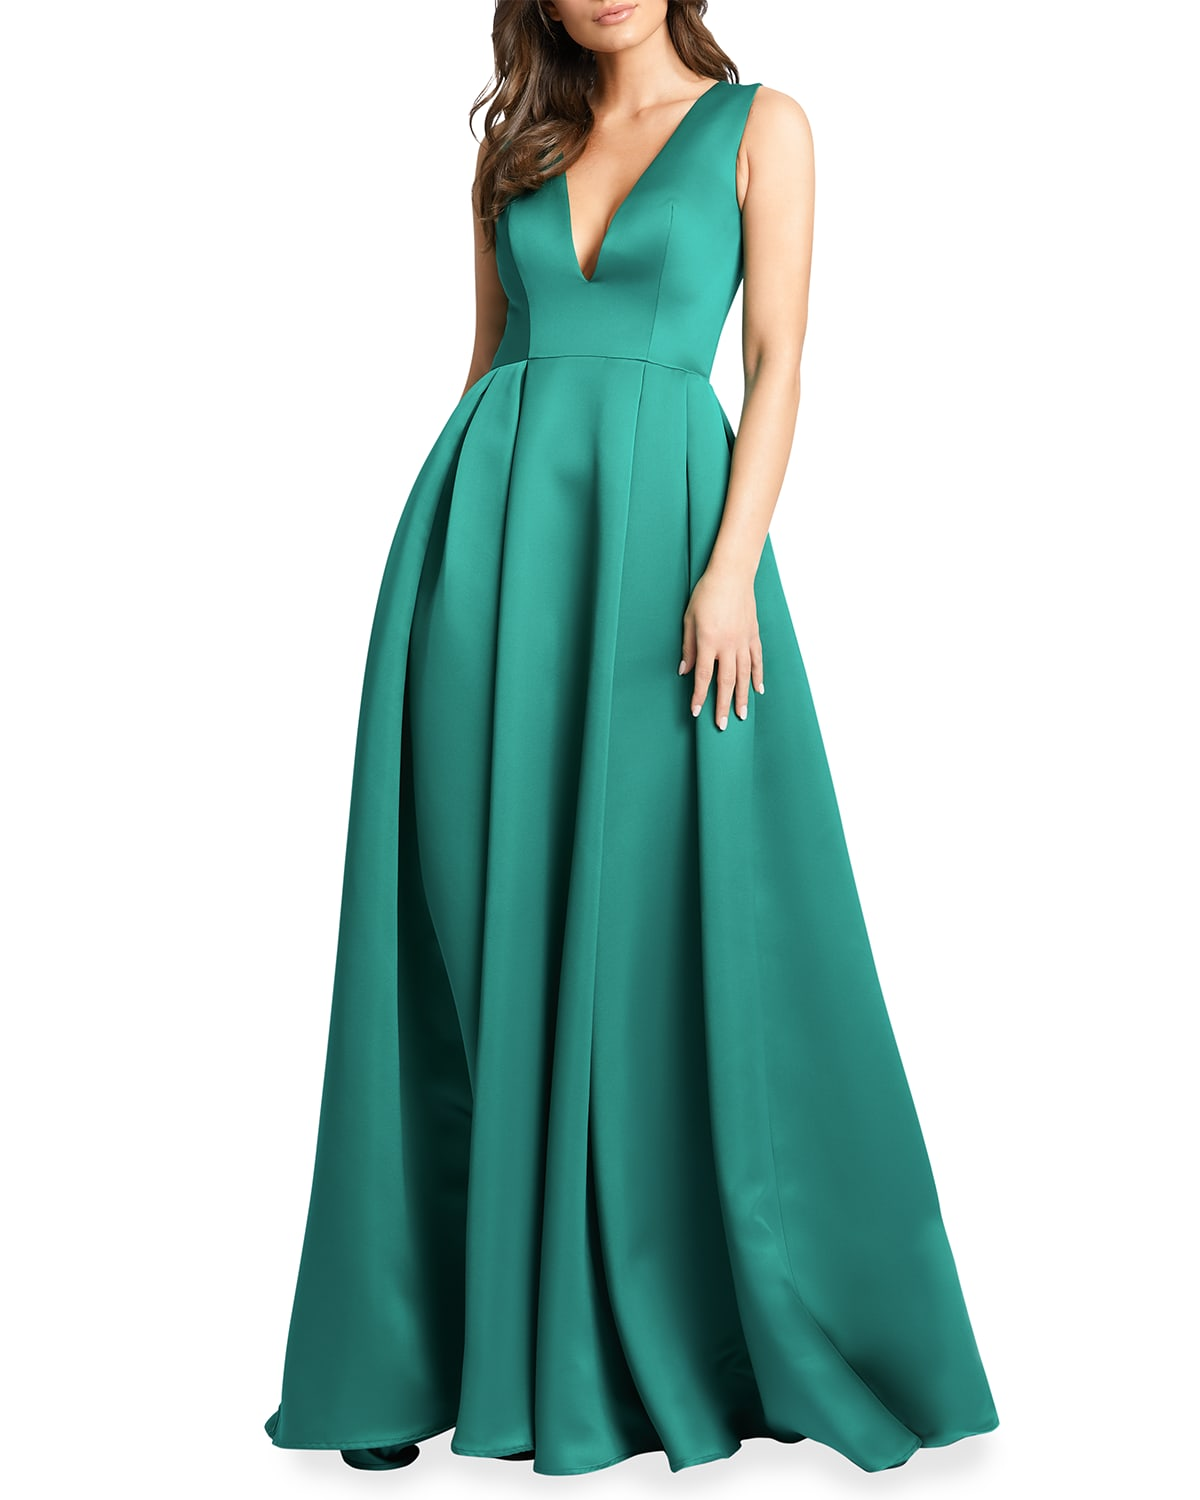 Plunging V-Neck Box-Pleated Satin A-Line Gown